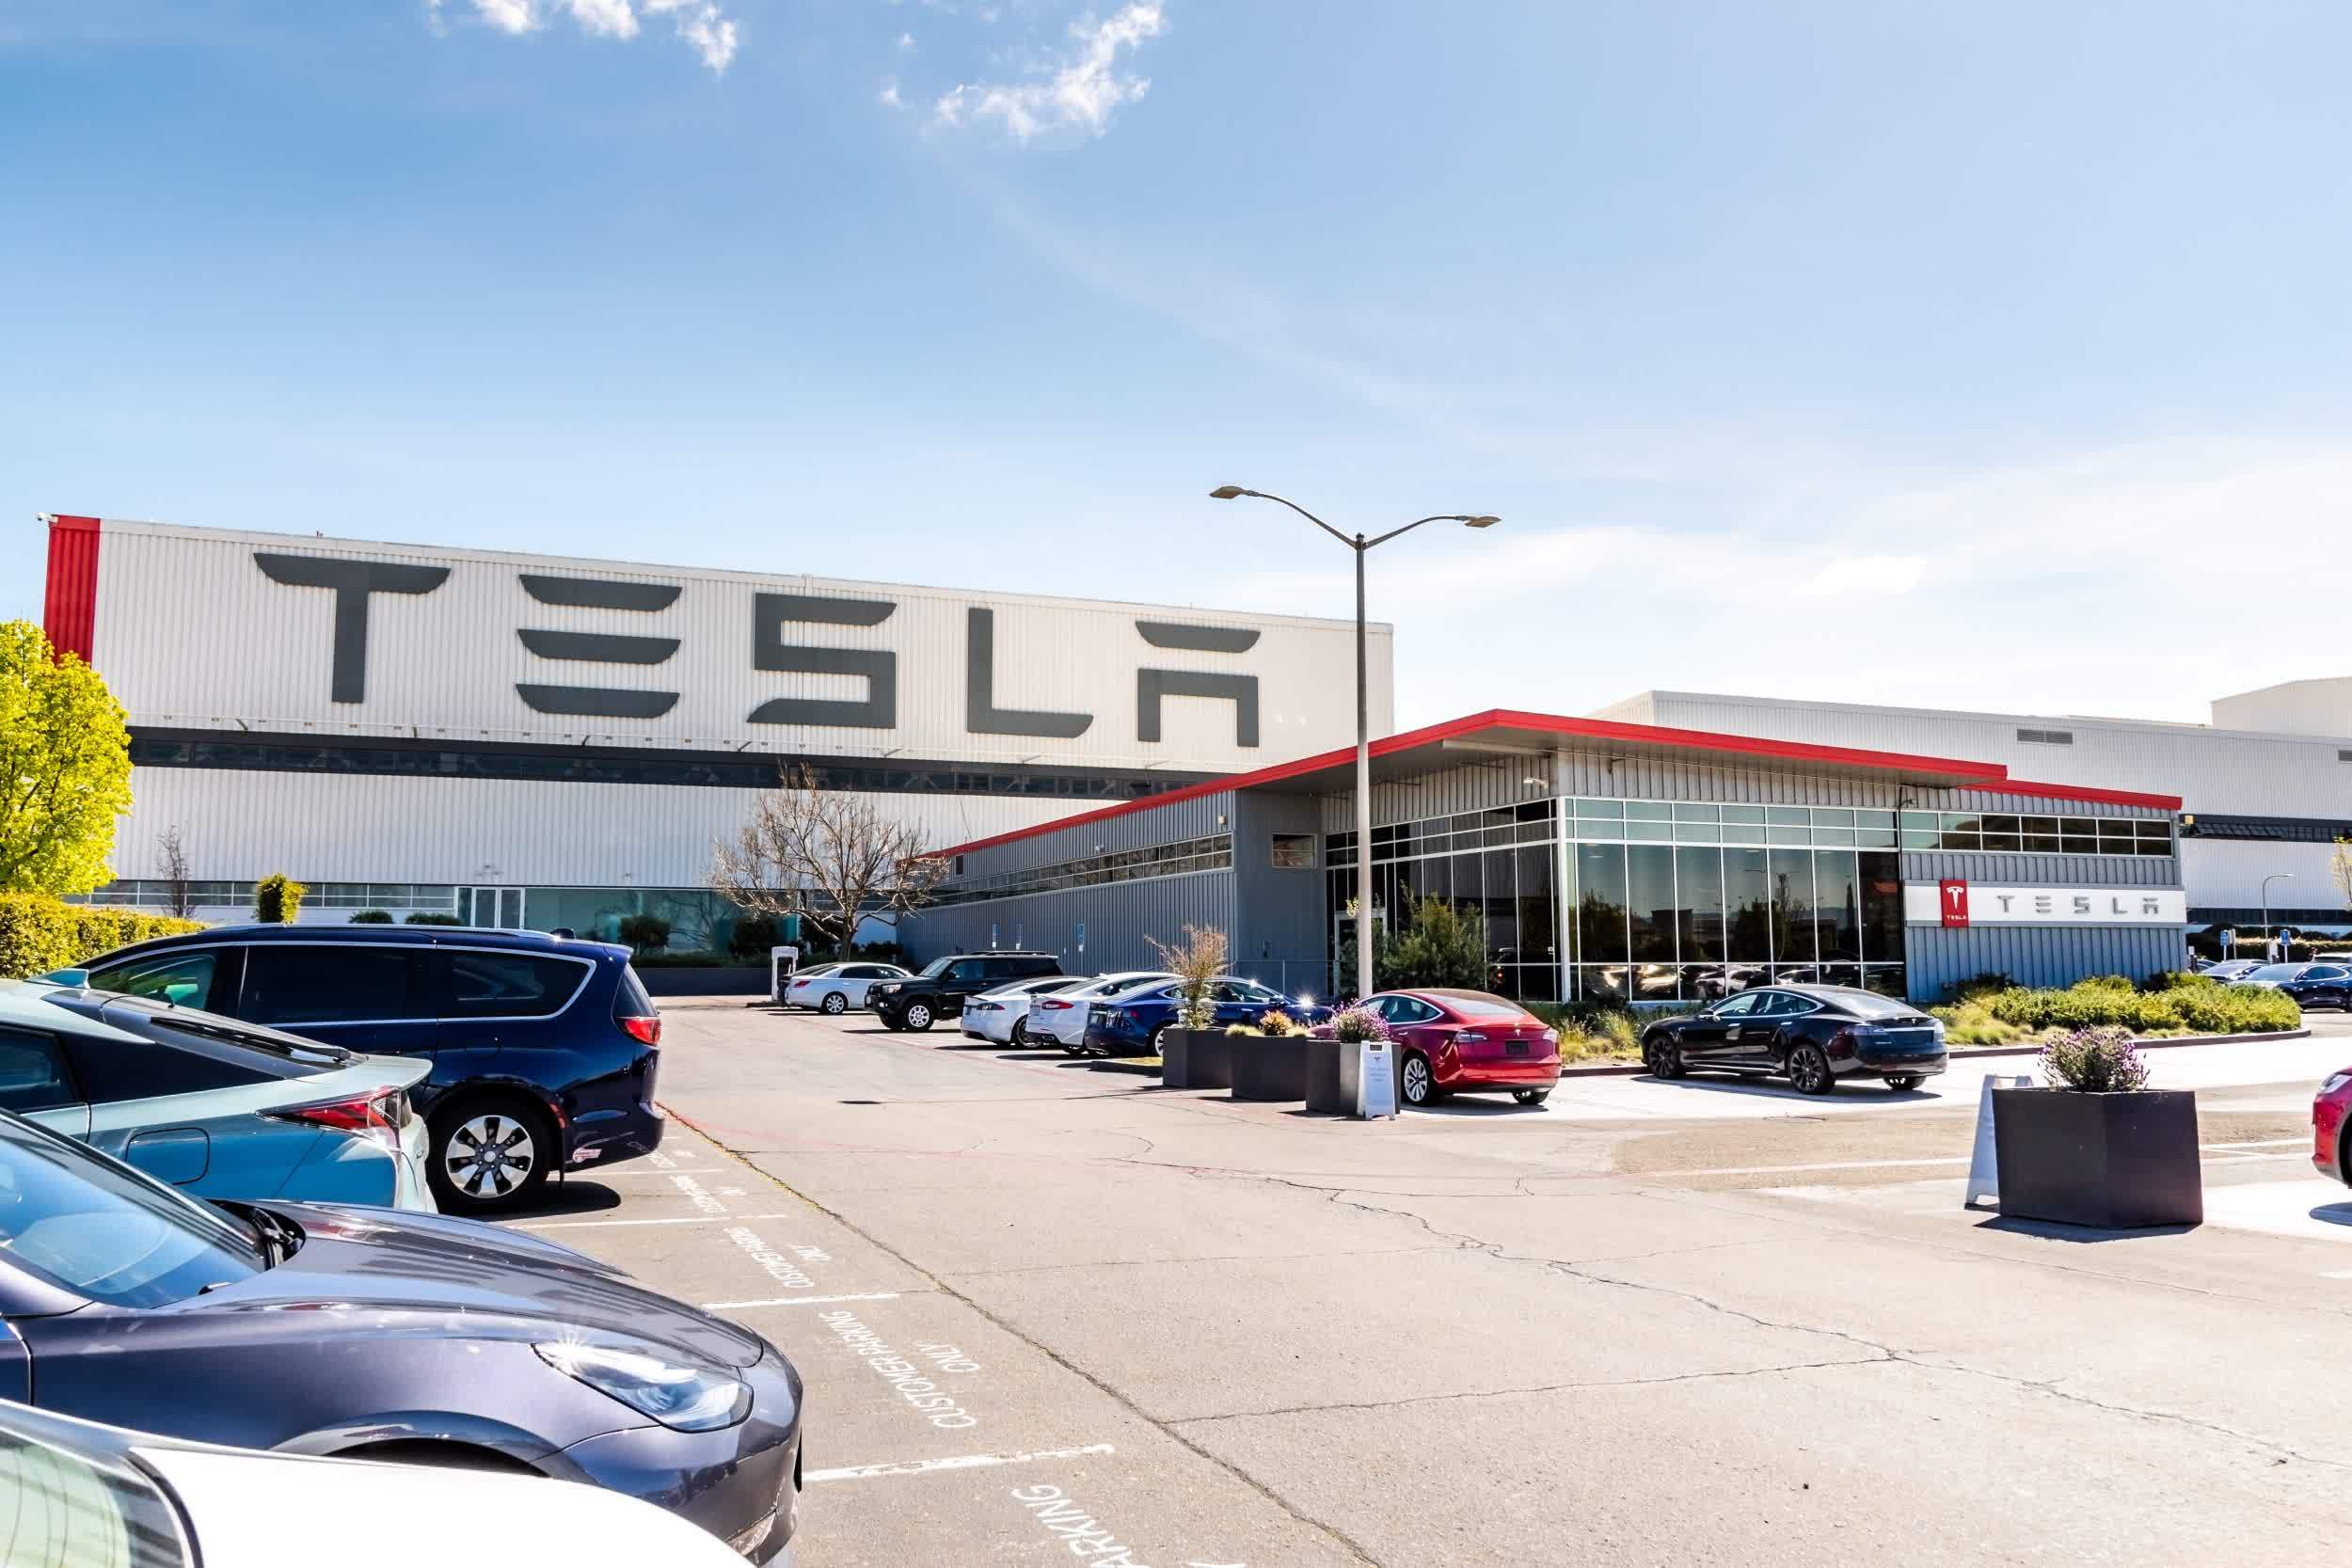 Tesla to pause Model S/X production for 18 days